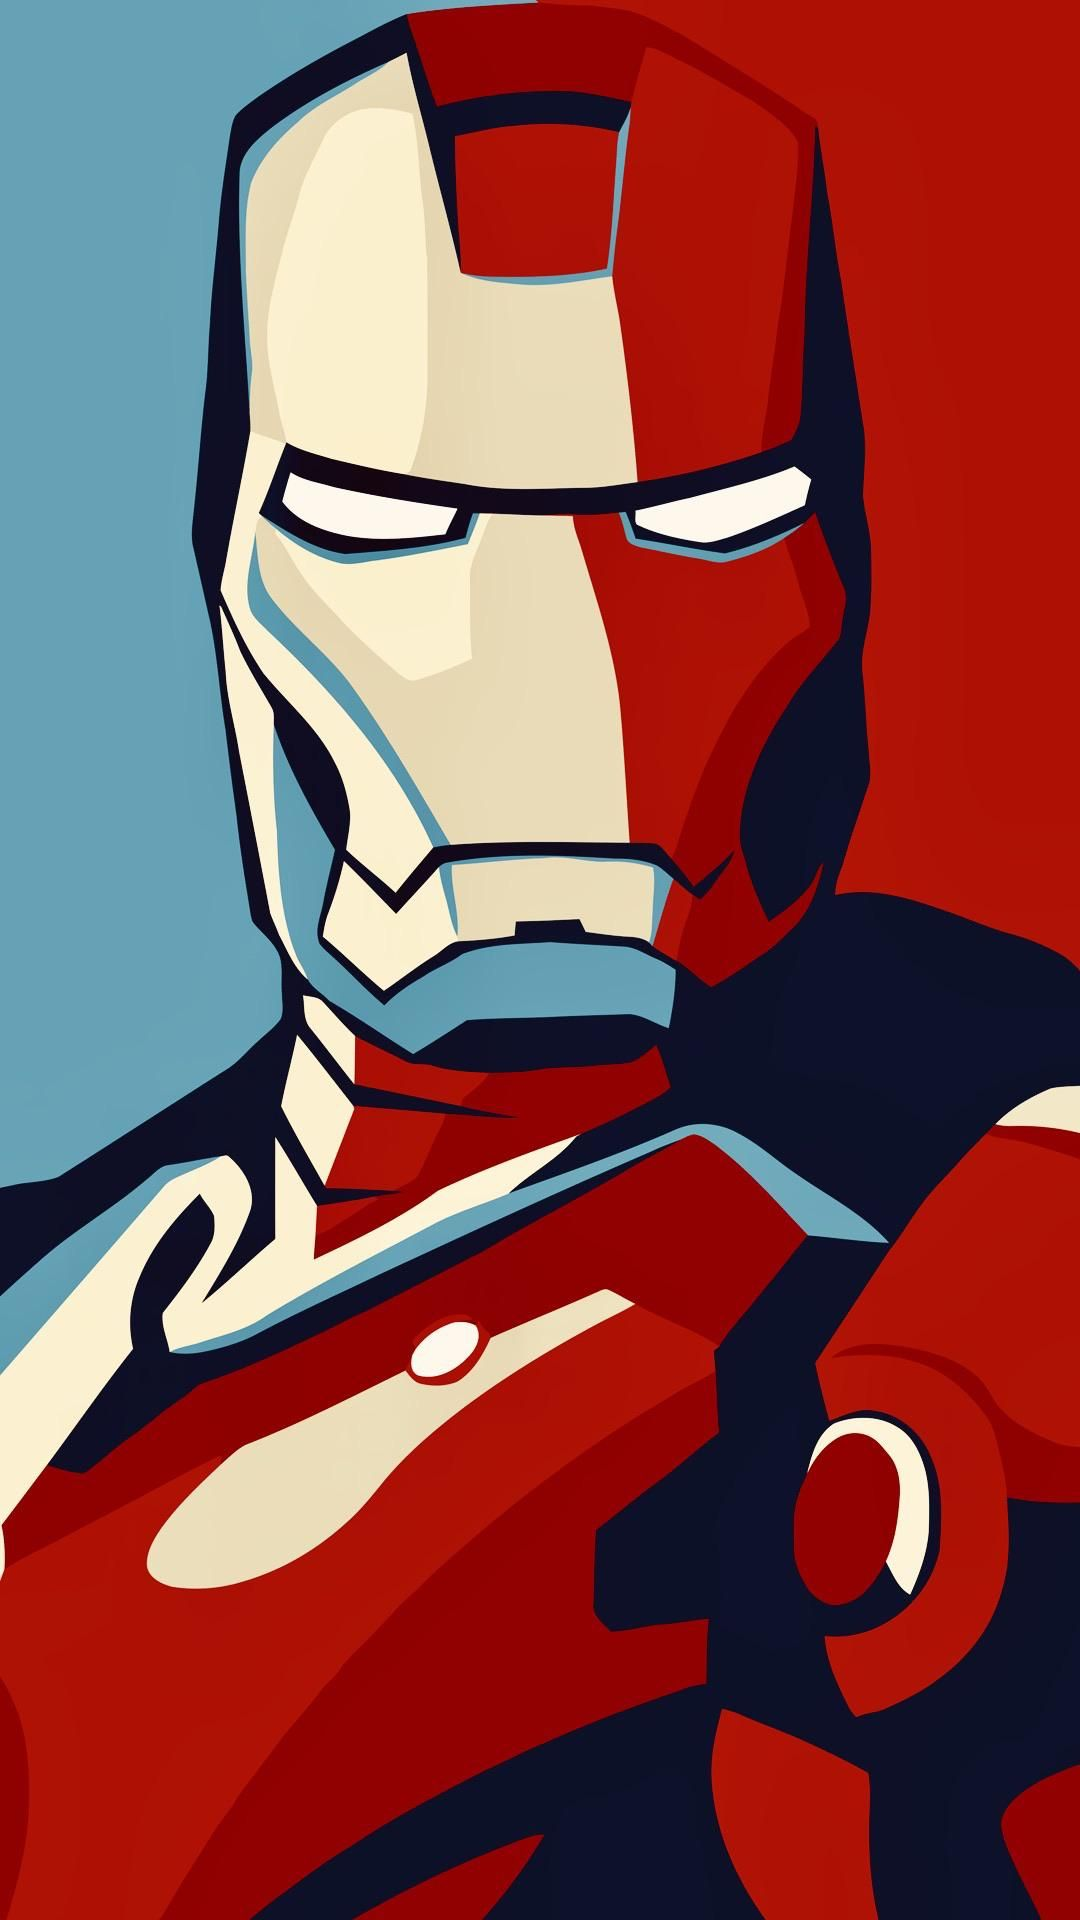 Phone Wallpaper Os Wallpapers In 2020 Iron Man Wallpaper Iron Man Art Iron Man Hd Wallpaper